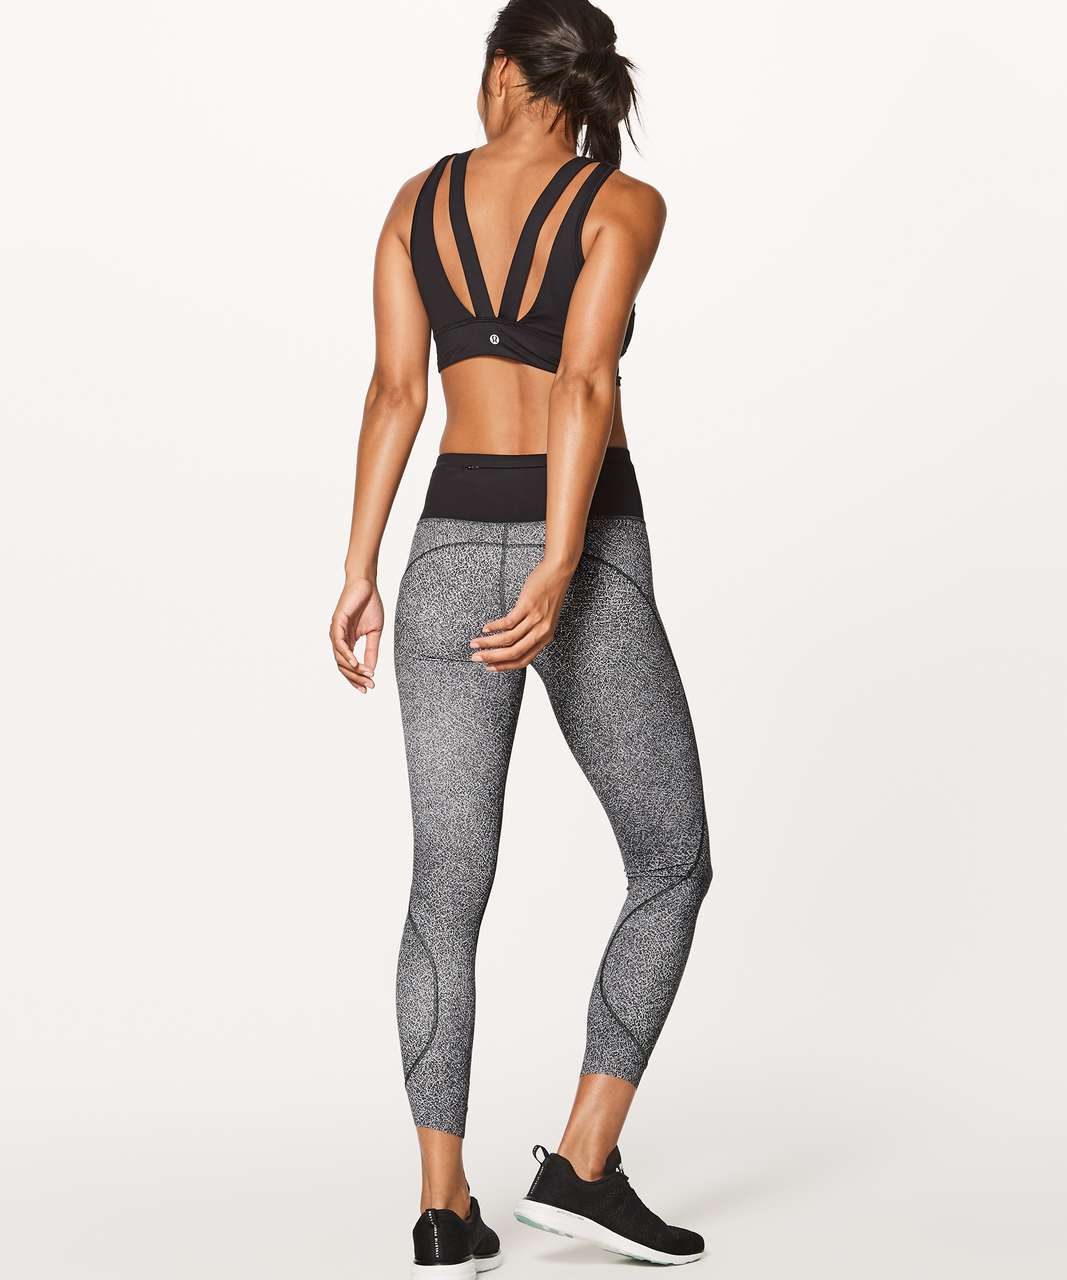 215e068f60 Lululemon Run The Day 7 8 Tight (25